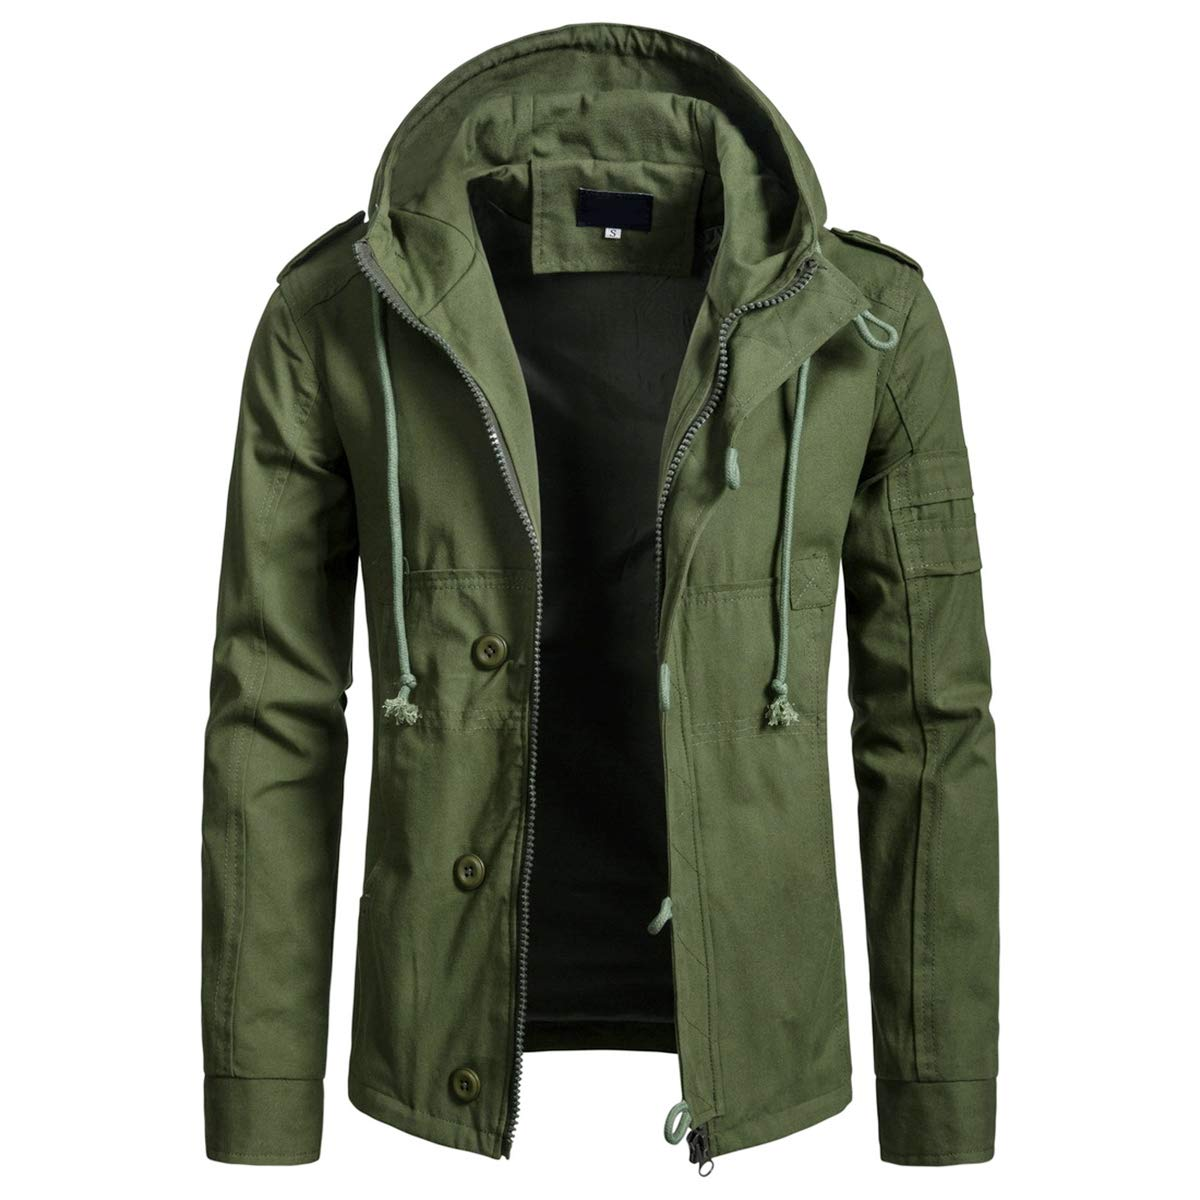 AOWOFS Men's Casual Hooded Jackets Cotton Fashion Windbreaker Outdoors Spring Zip Up Coat Green by AOWOFS